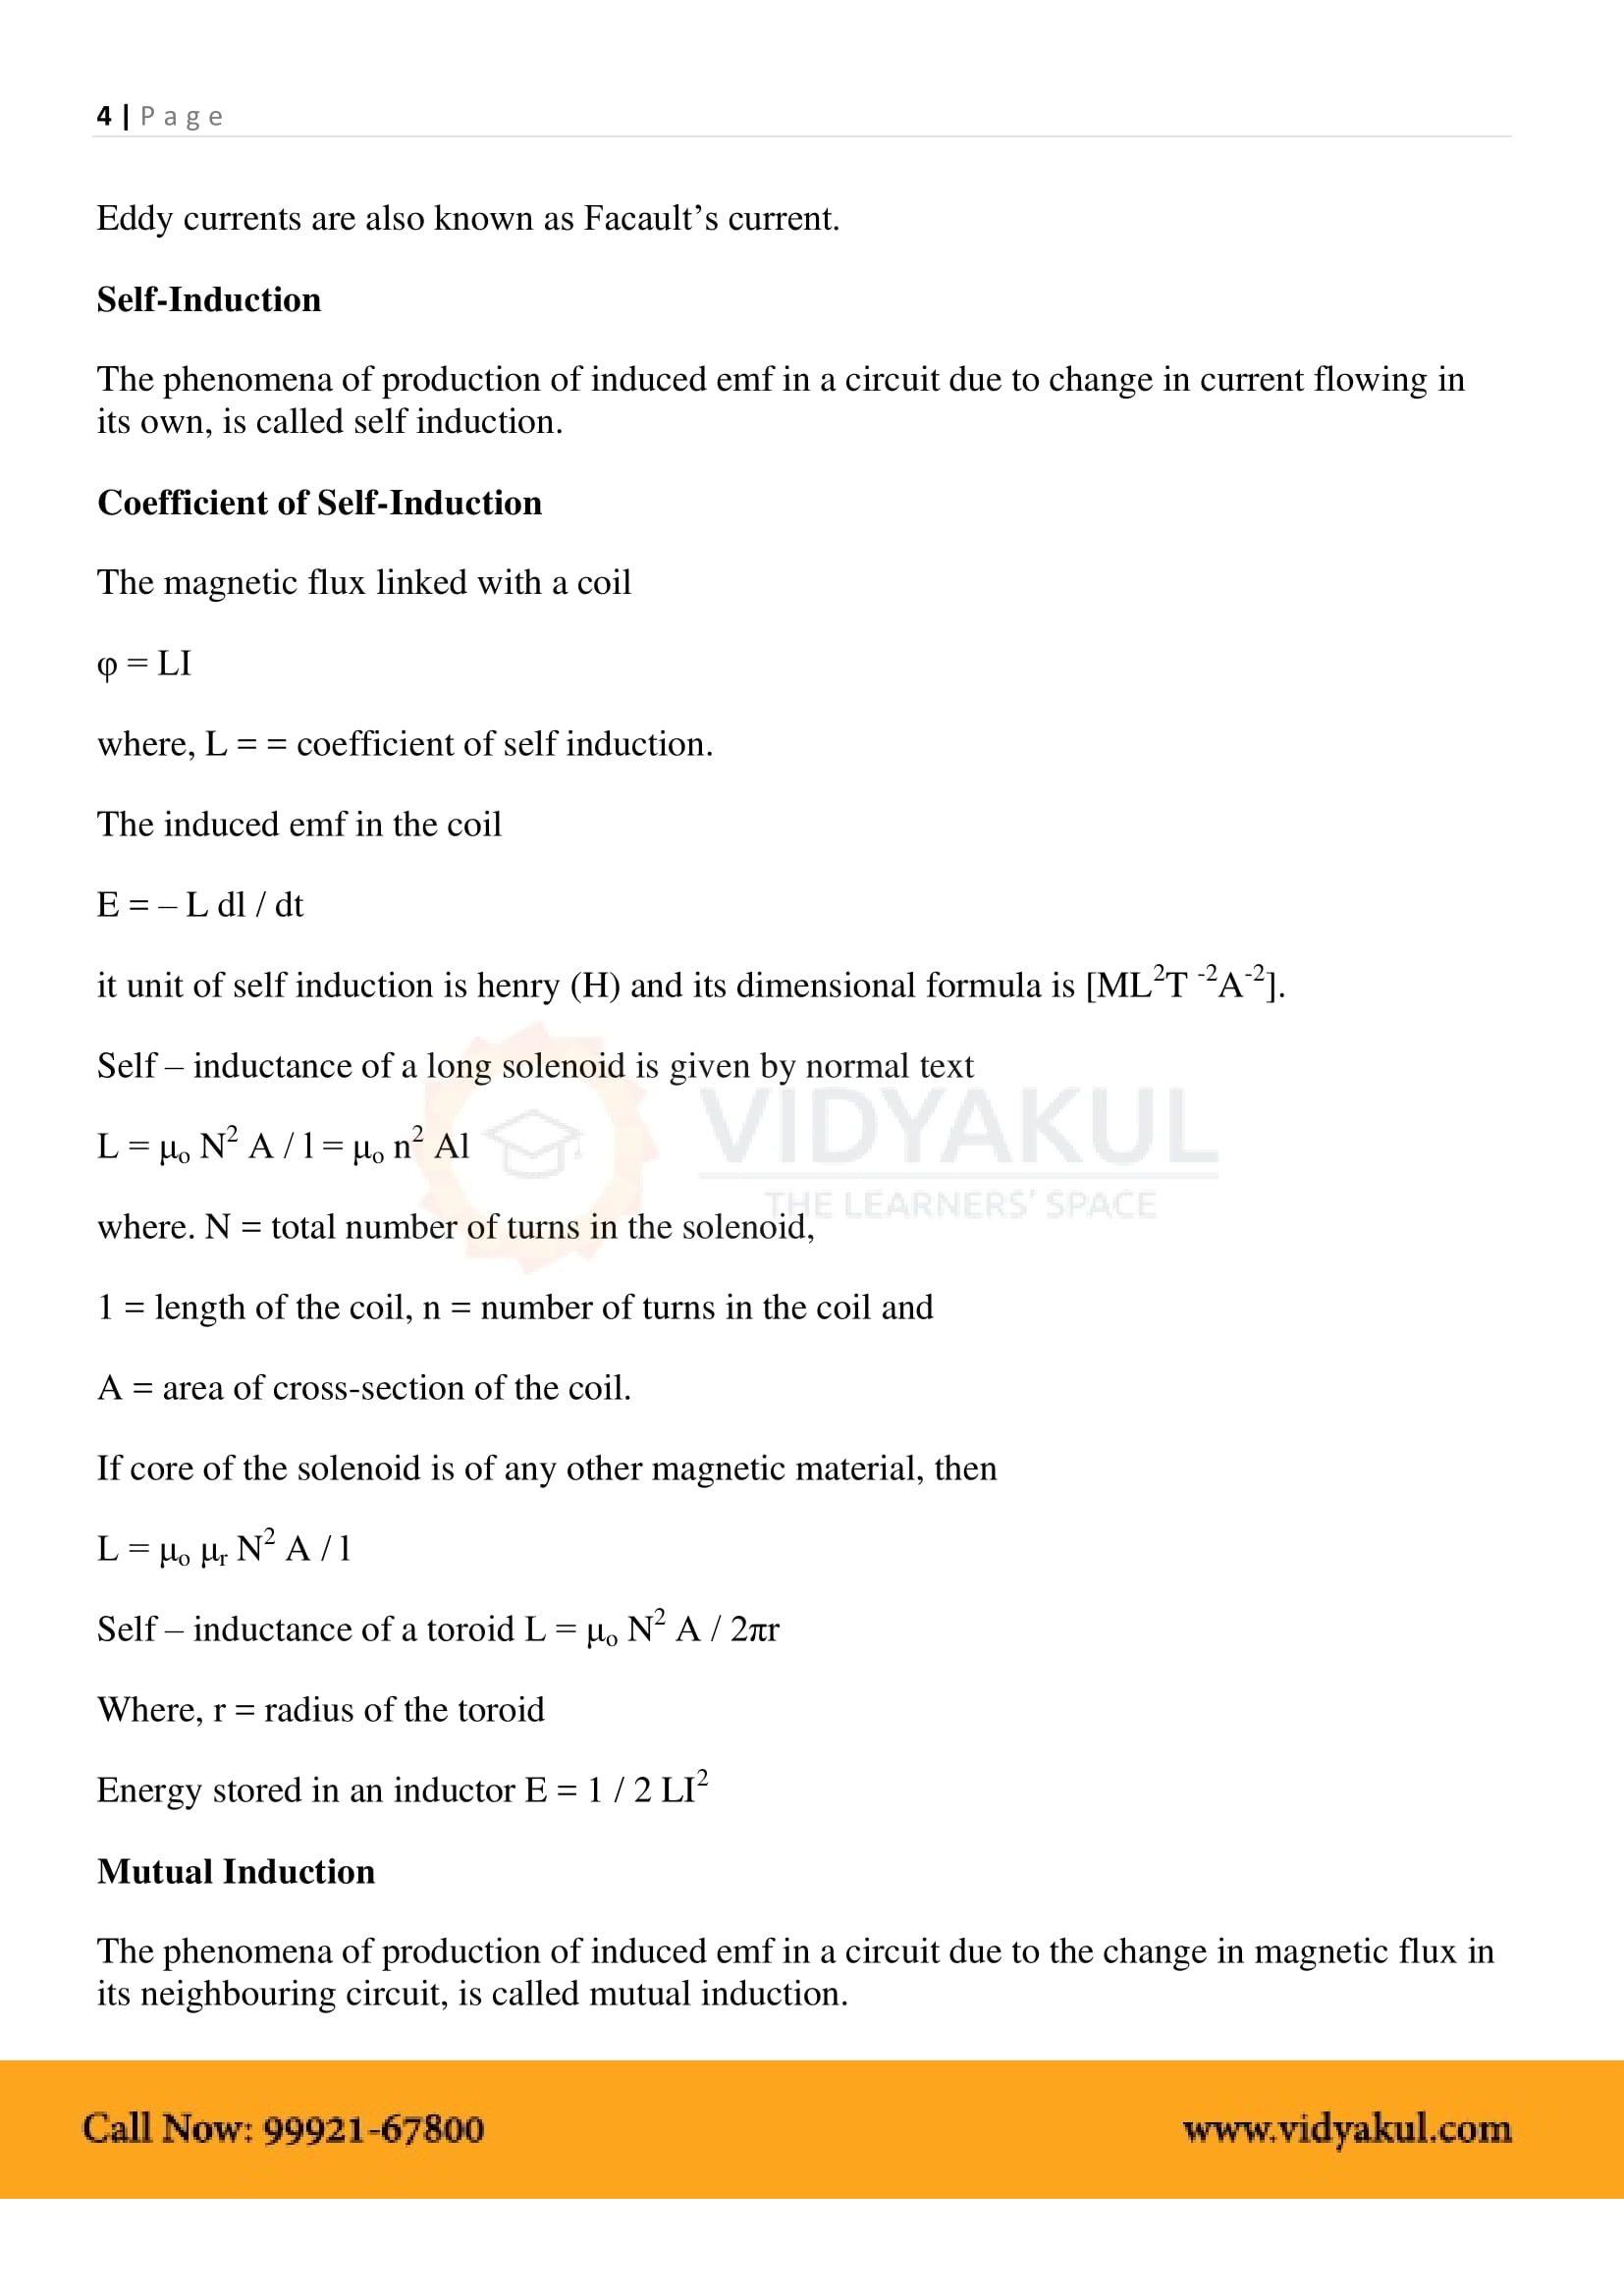 Electromagnetic Induction Class 12 Notes | Vidyakul